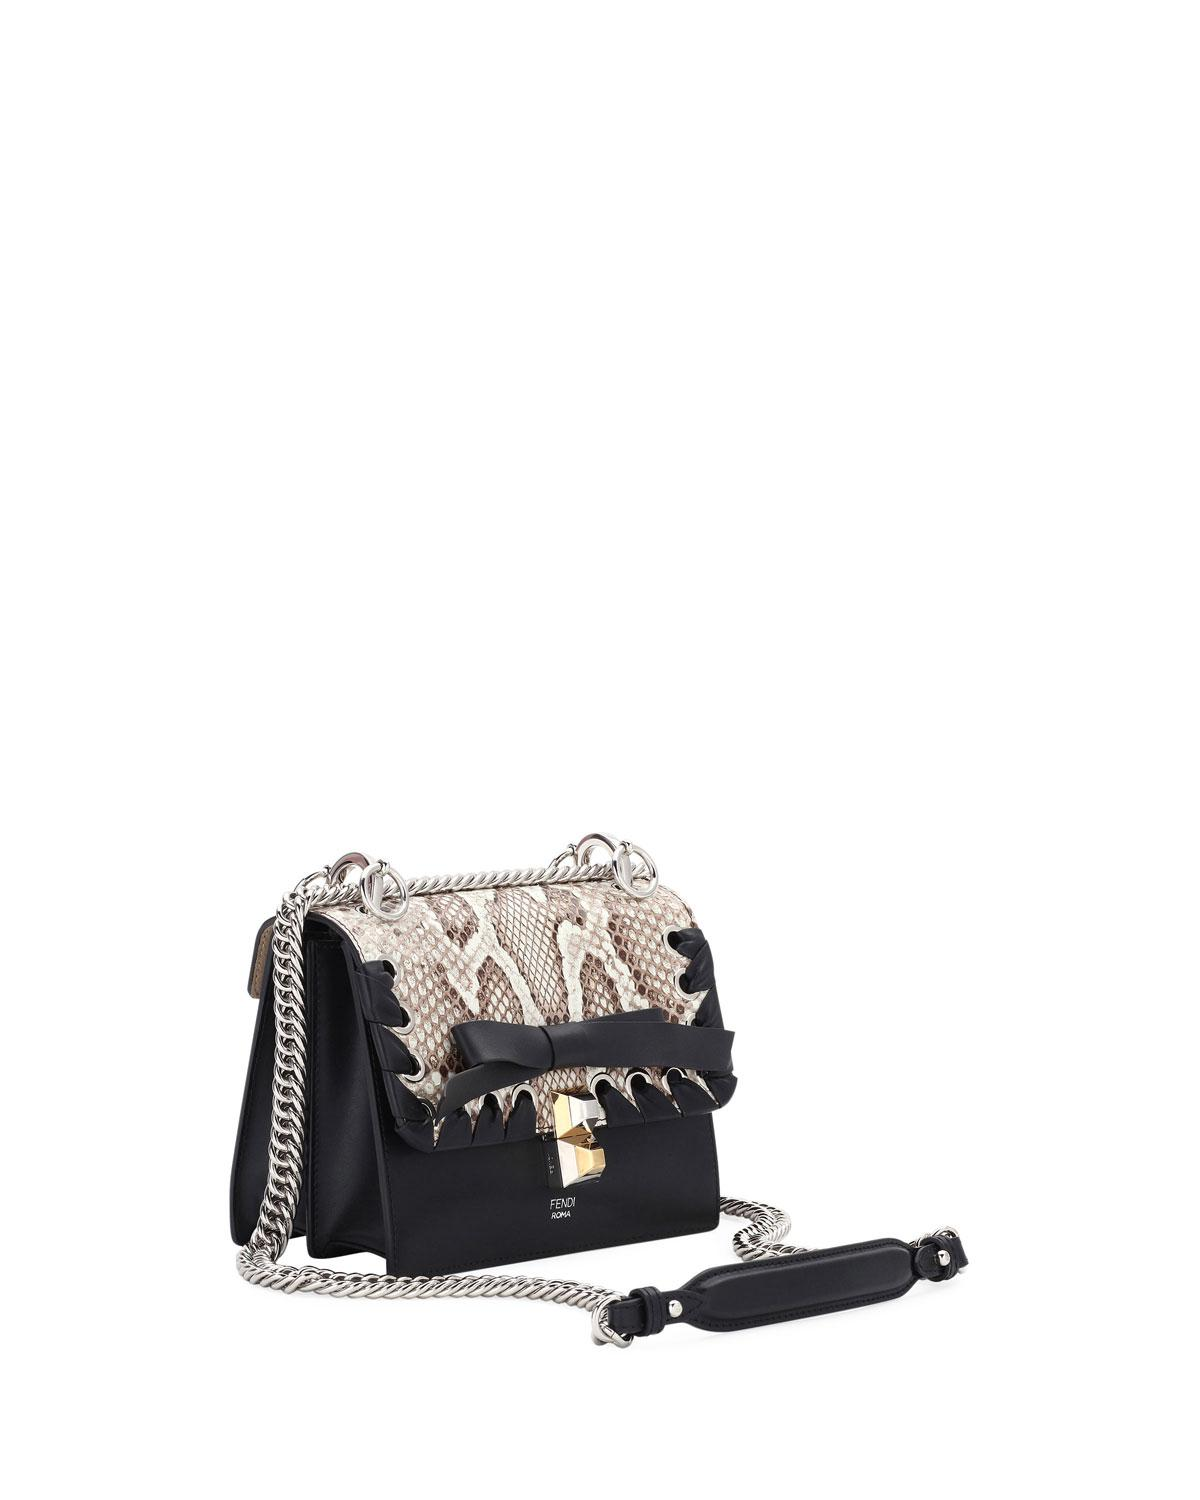 63d1dbb9f5 Fendi Kan I Small Calf Liberty And Python Shoulder Bag in Black - Lyst